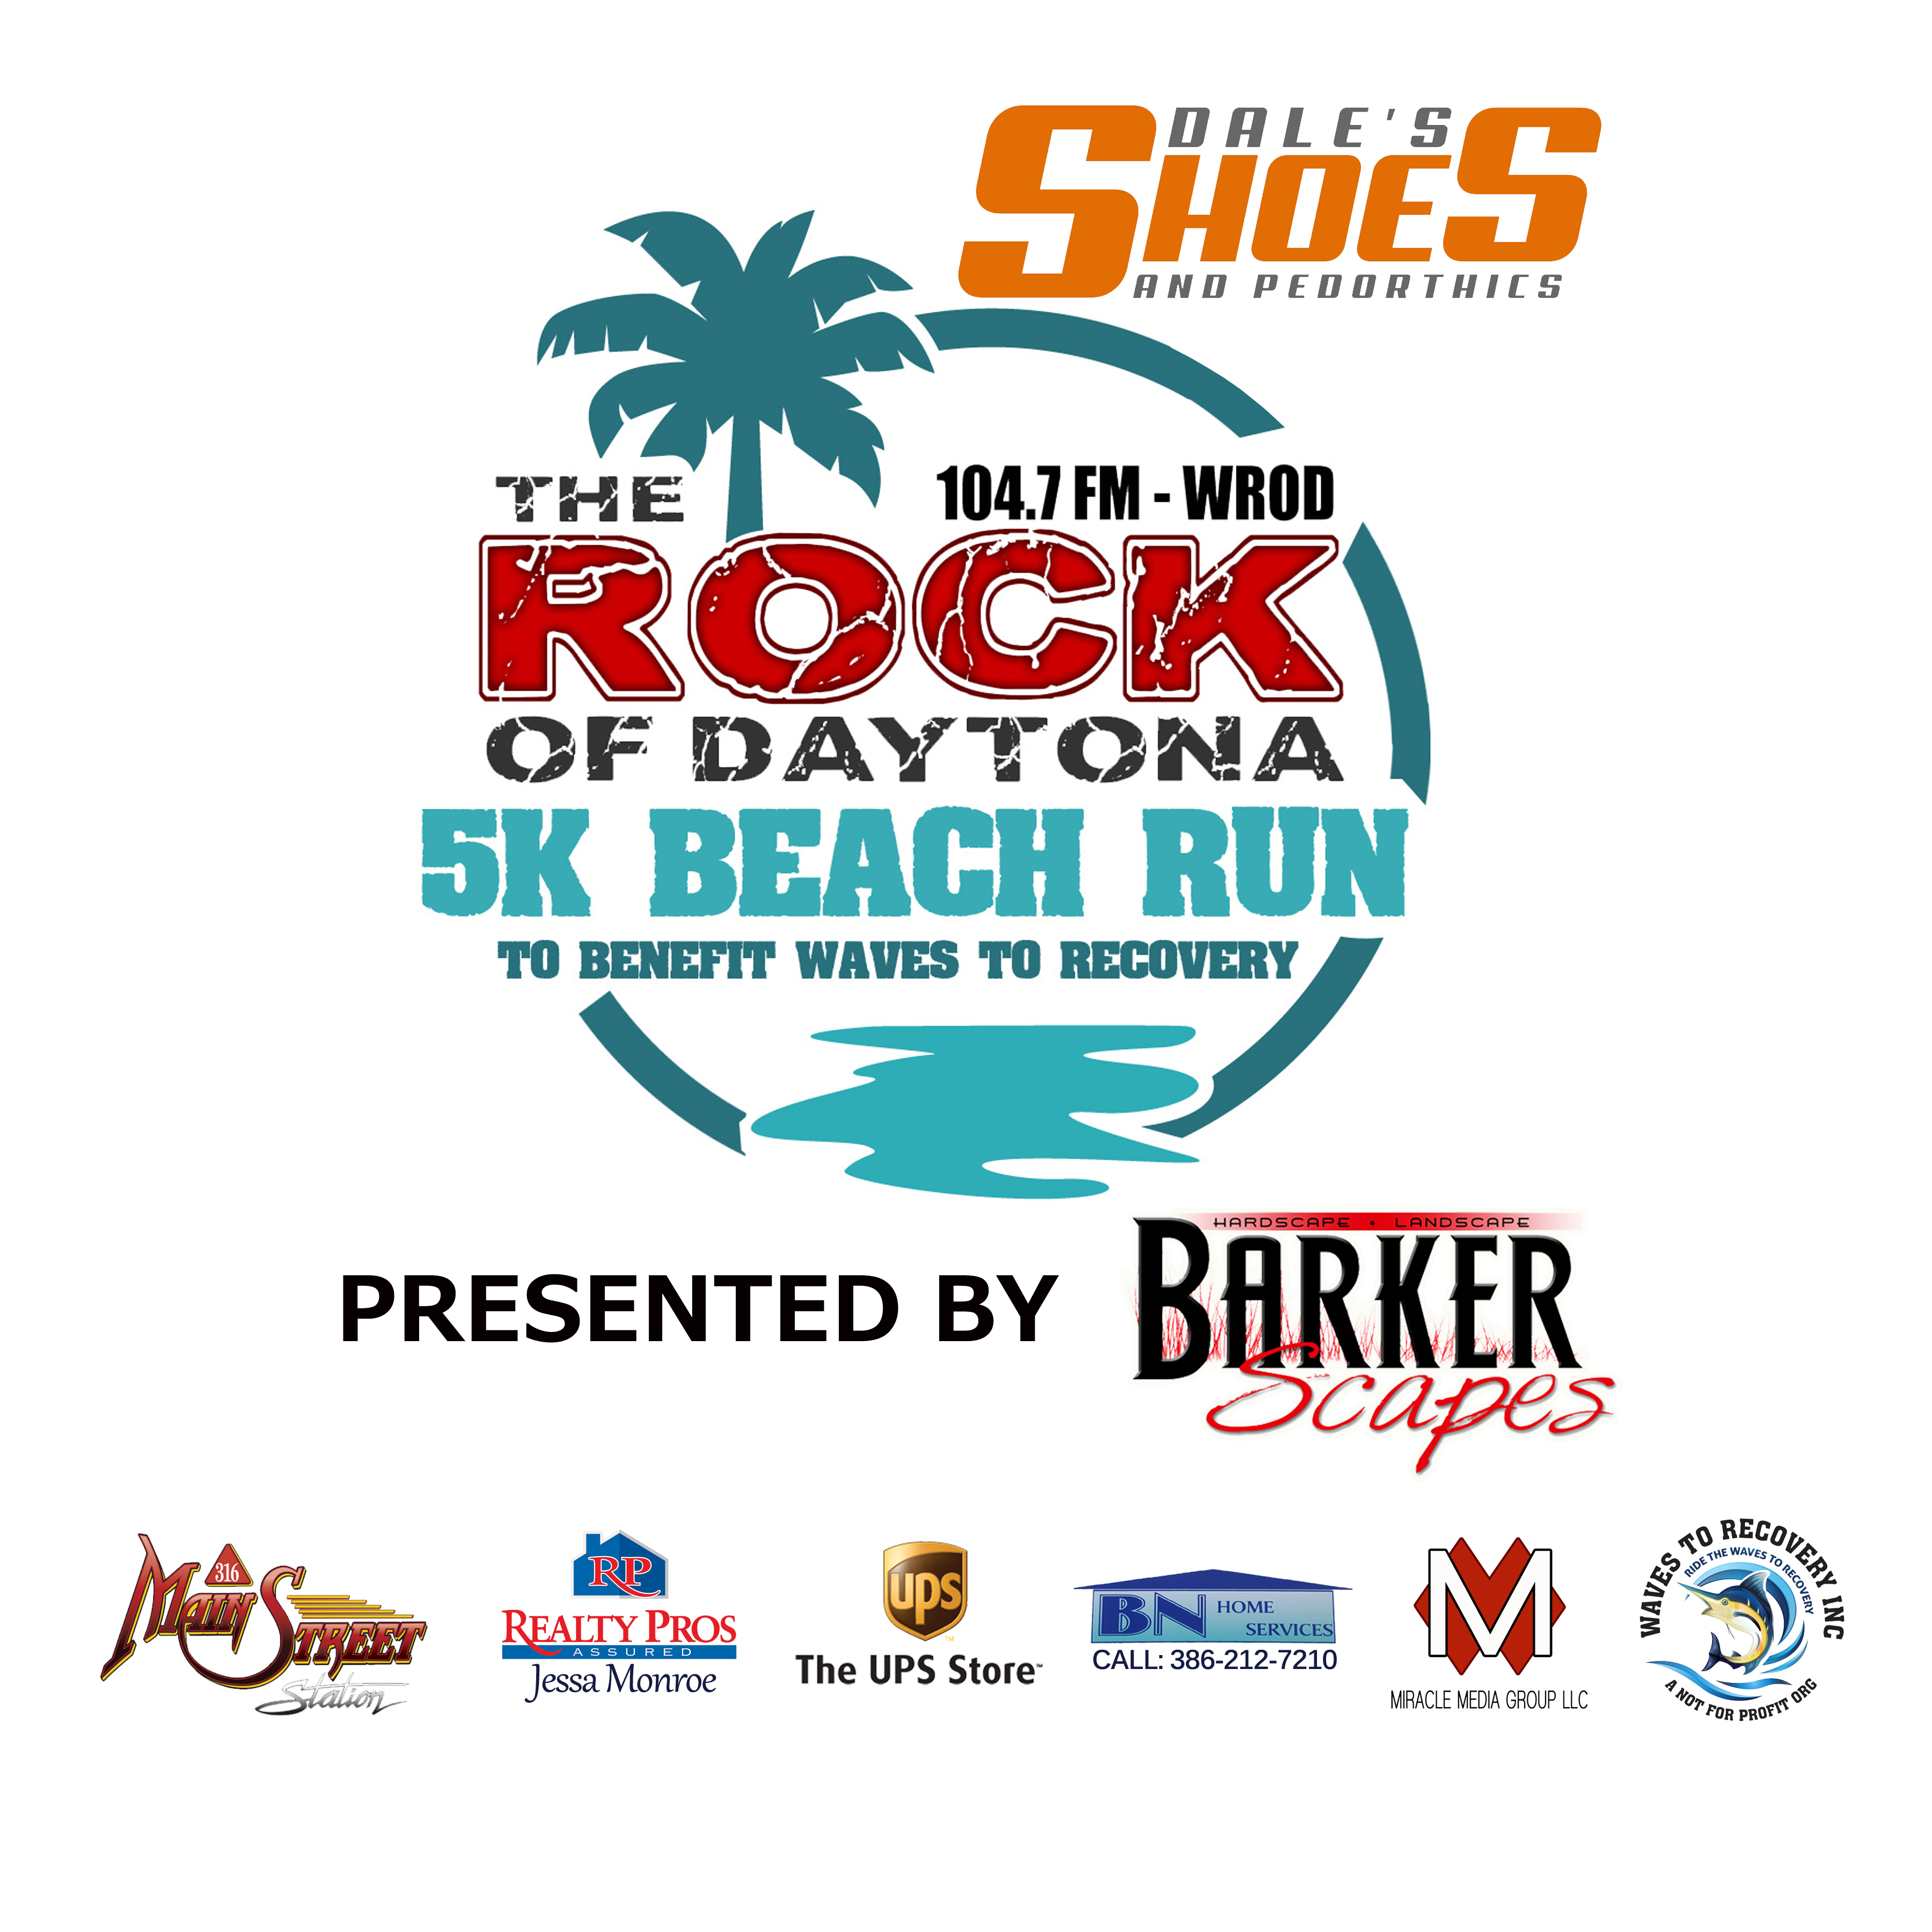 """20562977f5 The Rock of Daytona"""" invites you to the 3rd Annual WROD – Dales Shoes 5K  Beach Run"""